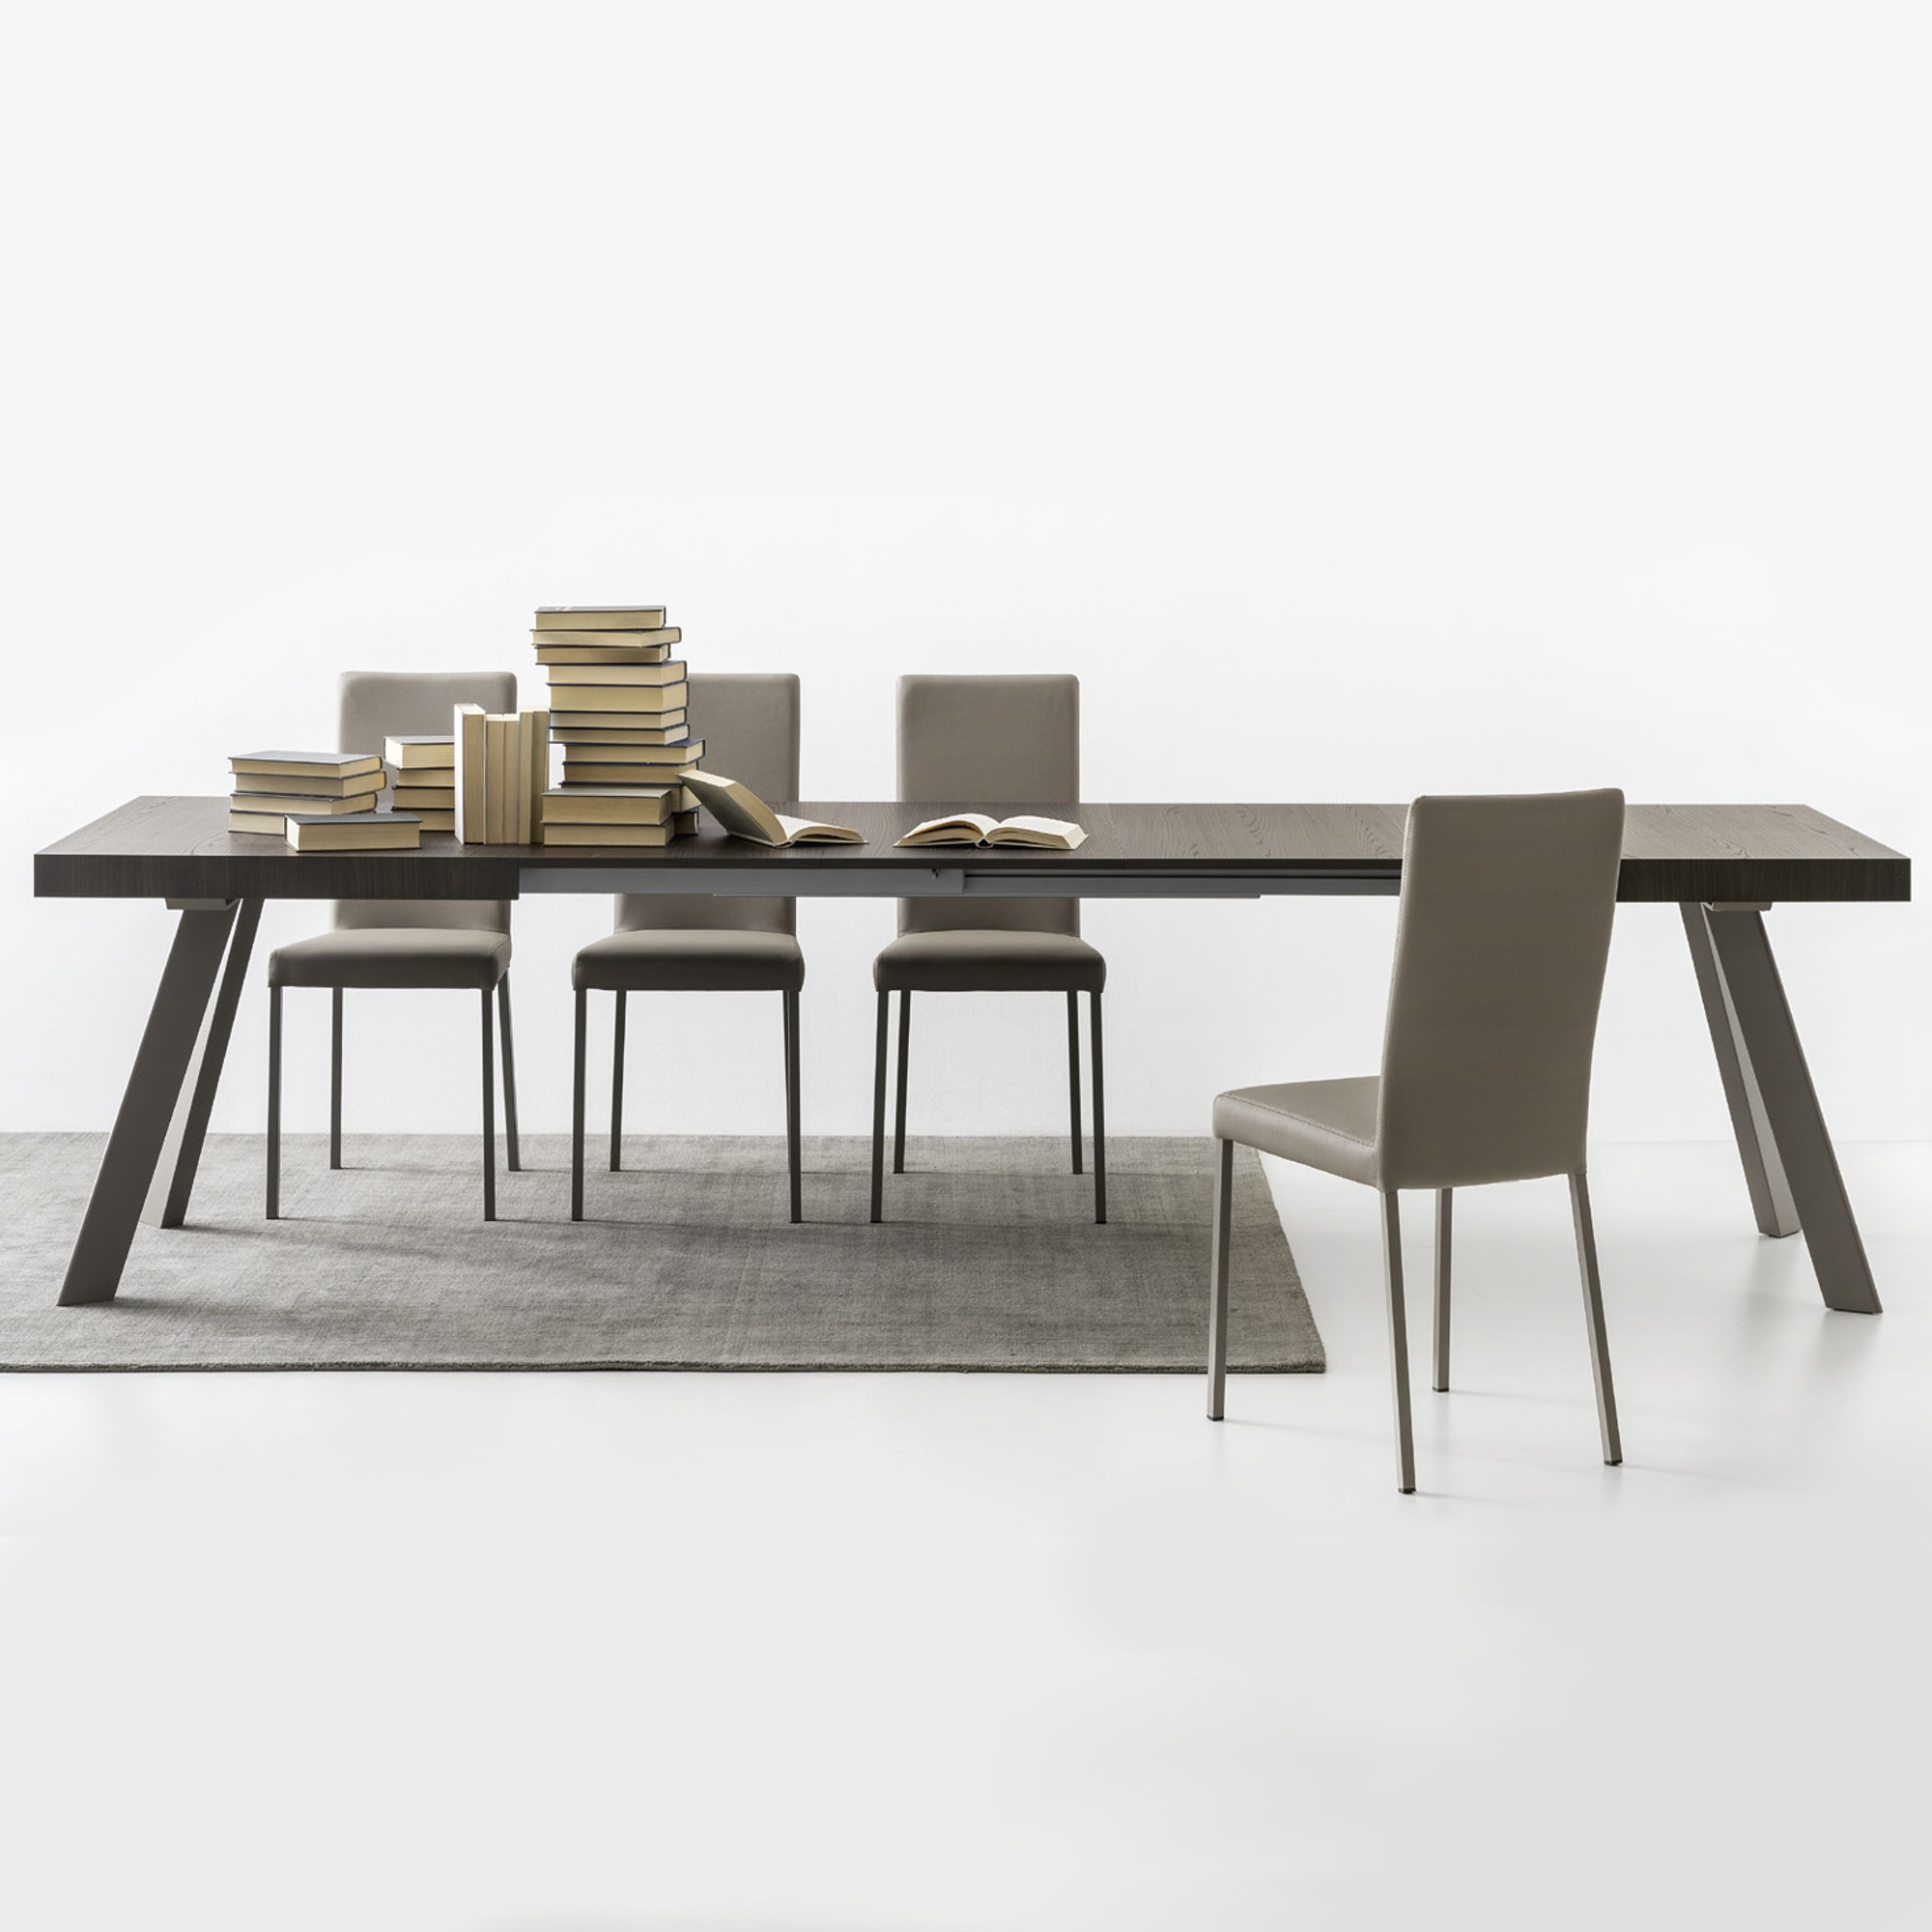 BOLD, by CONNUBIA BY CALLIGARIS